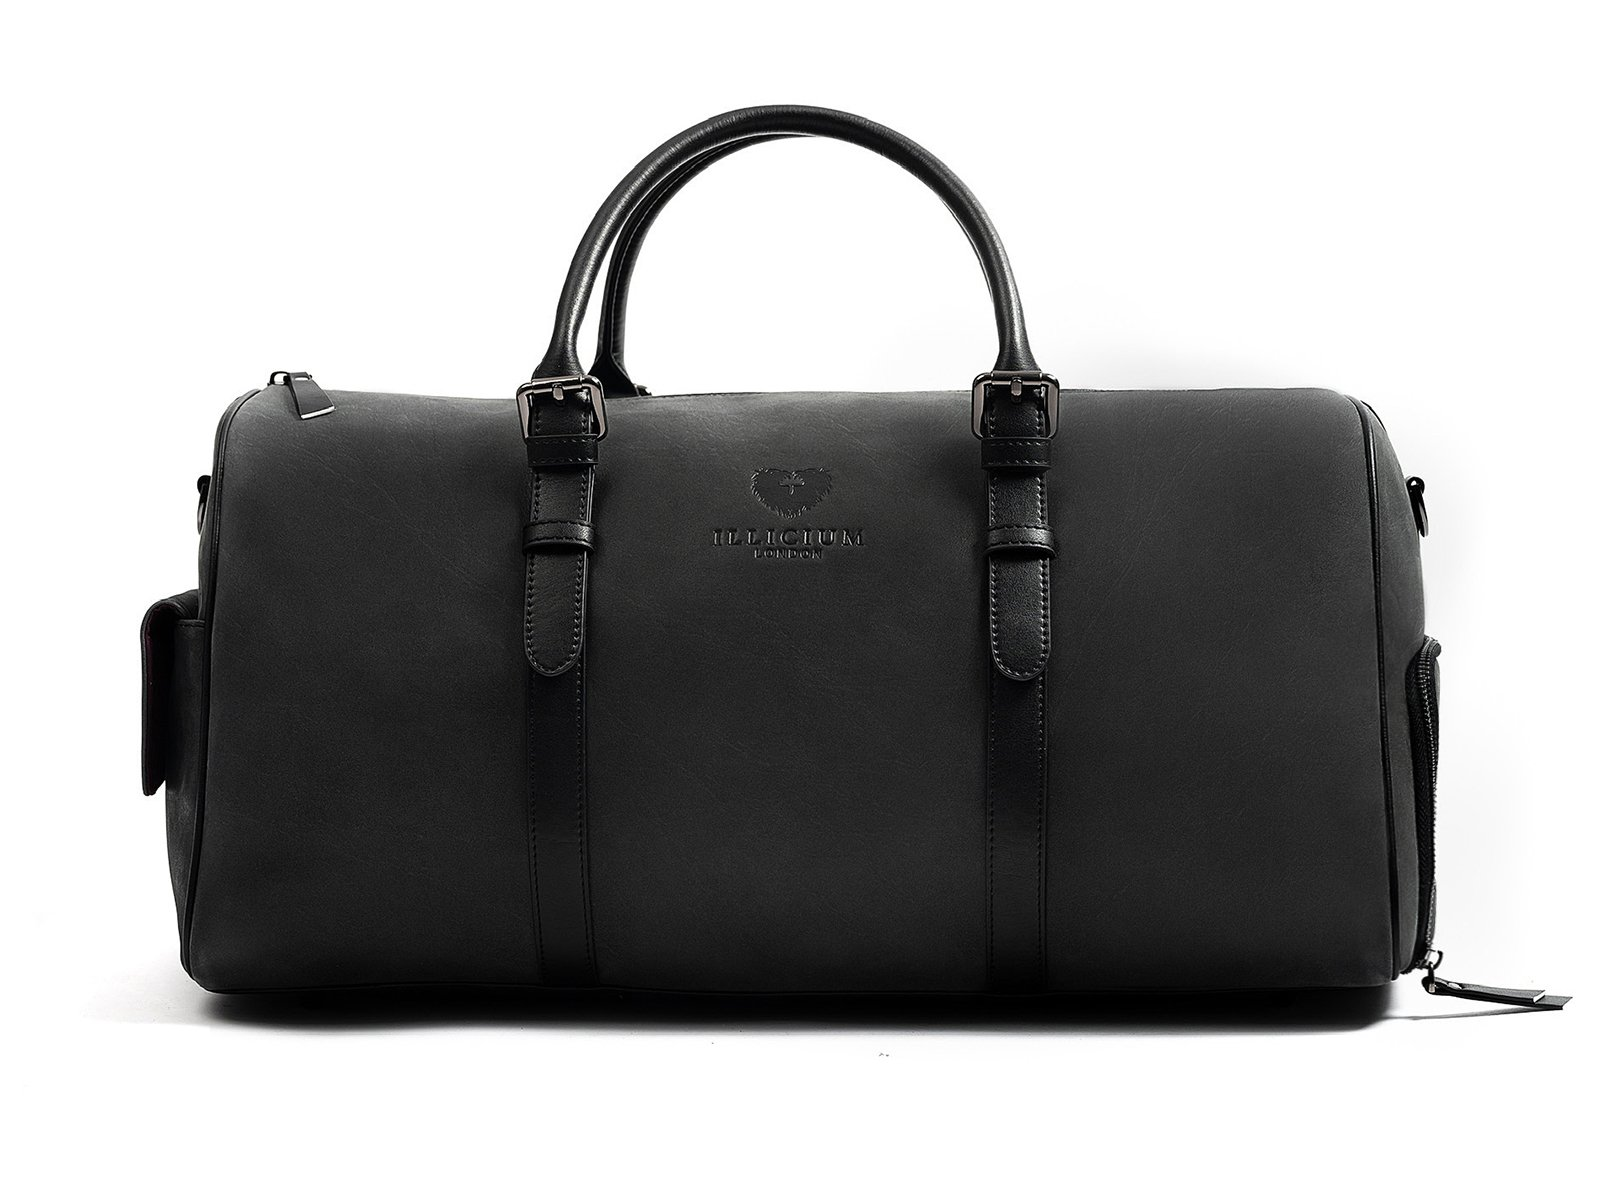 kingshood leather duffle bag